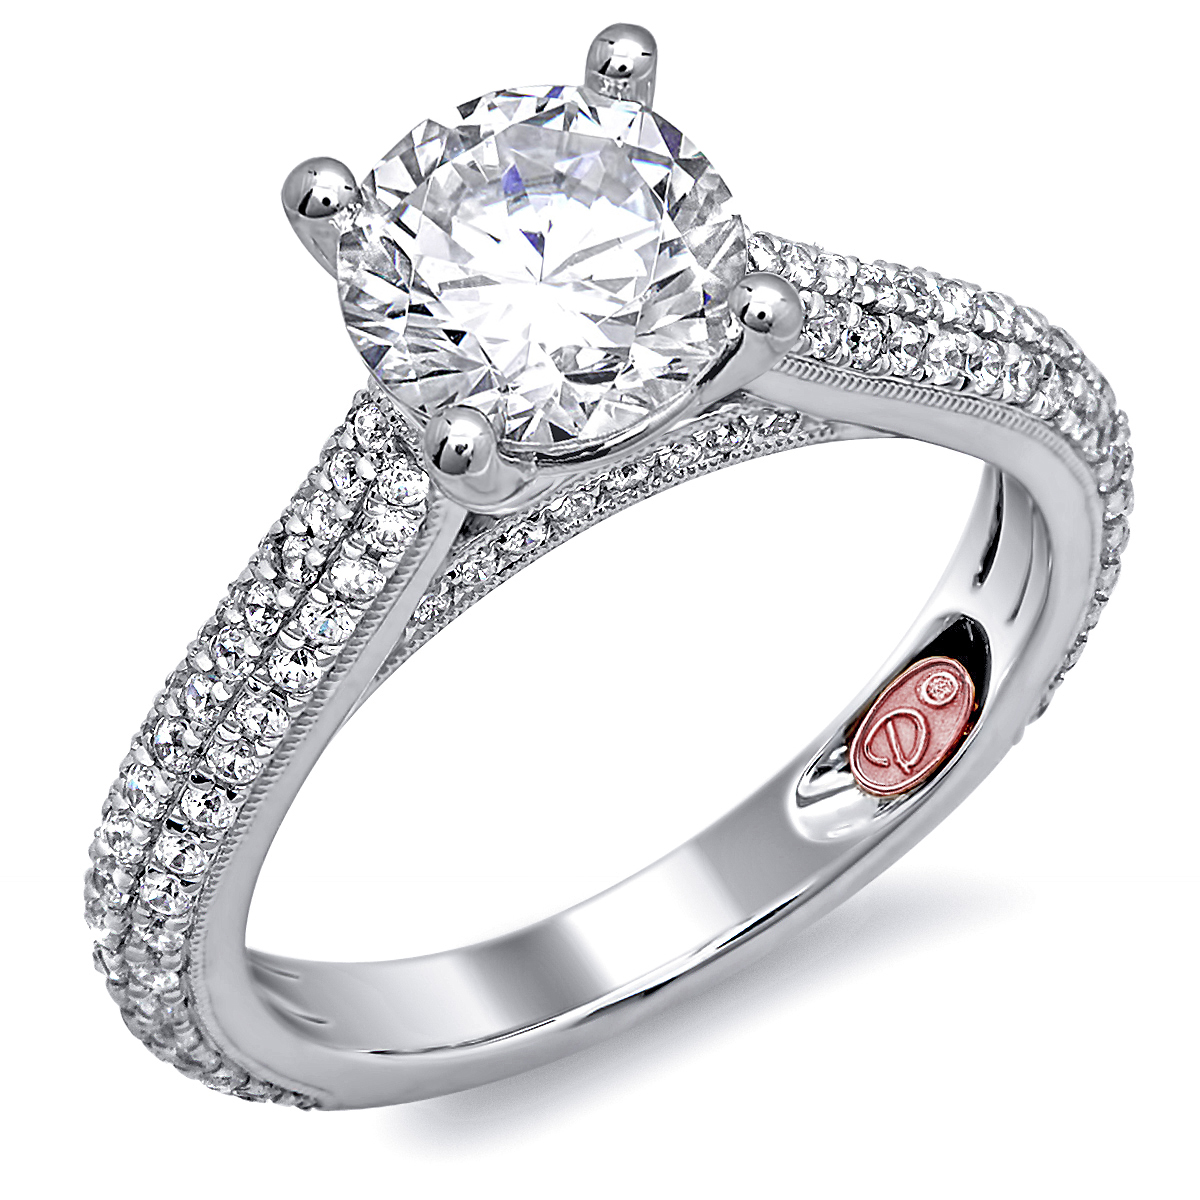 Designer engagement ring demarco bridal jewelry official for Jewelry wedding rings